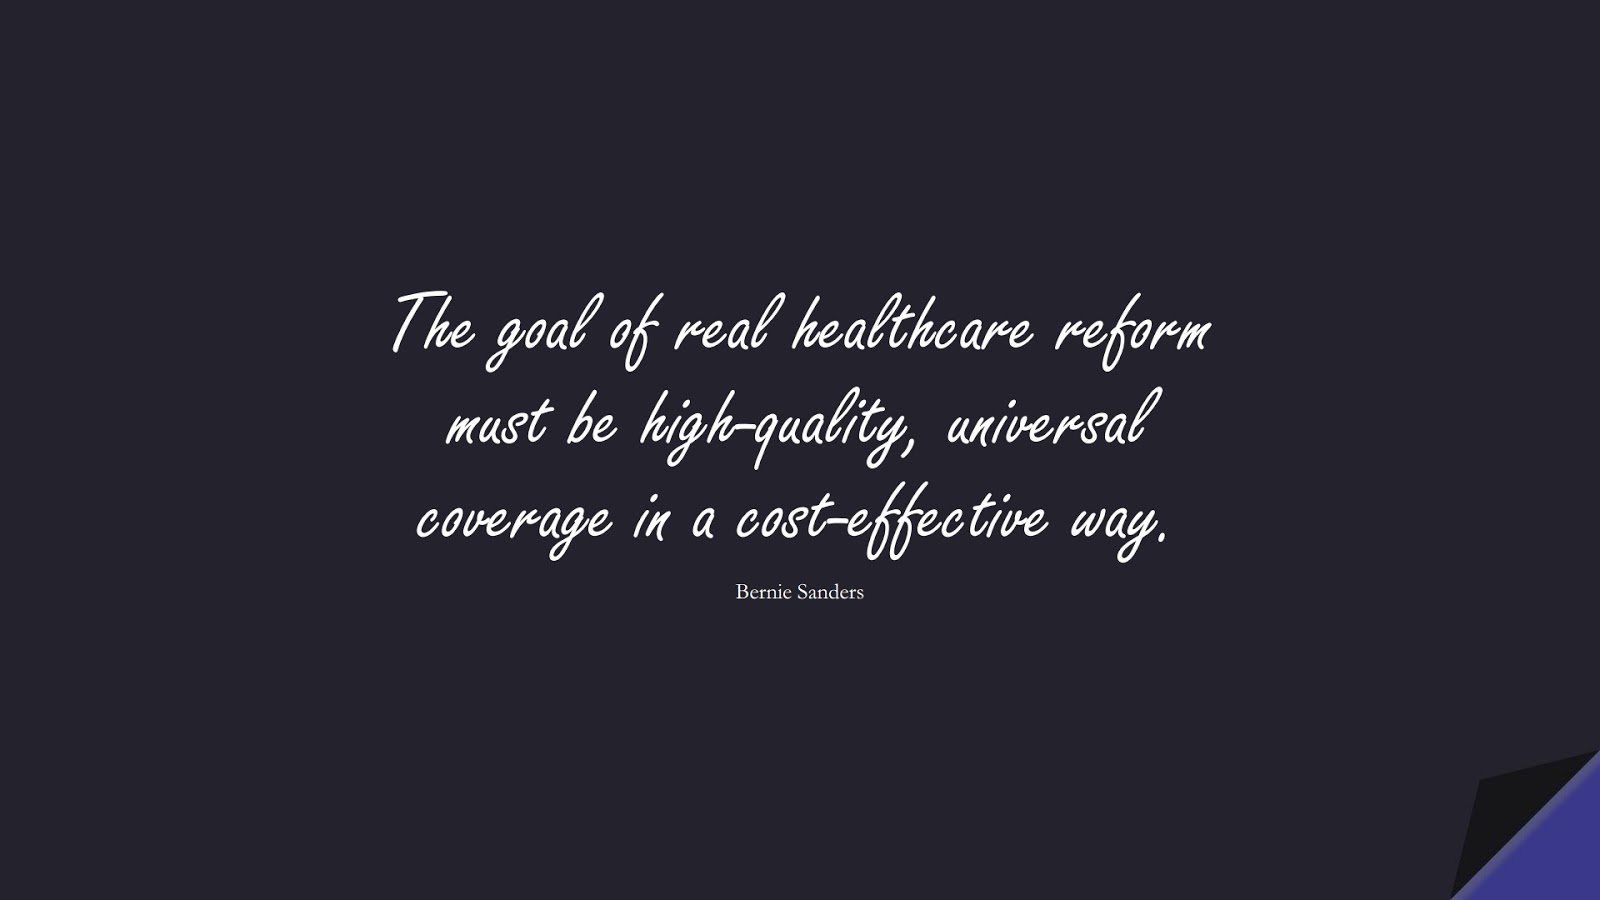 The goal of real healthcare reform must be high-quality, universal coverage in a cost-effective way. (Bernie Sanders);  #HealthQuotes